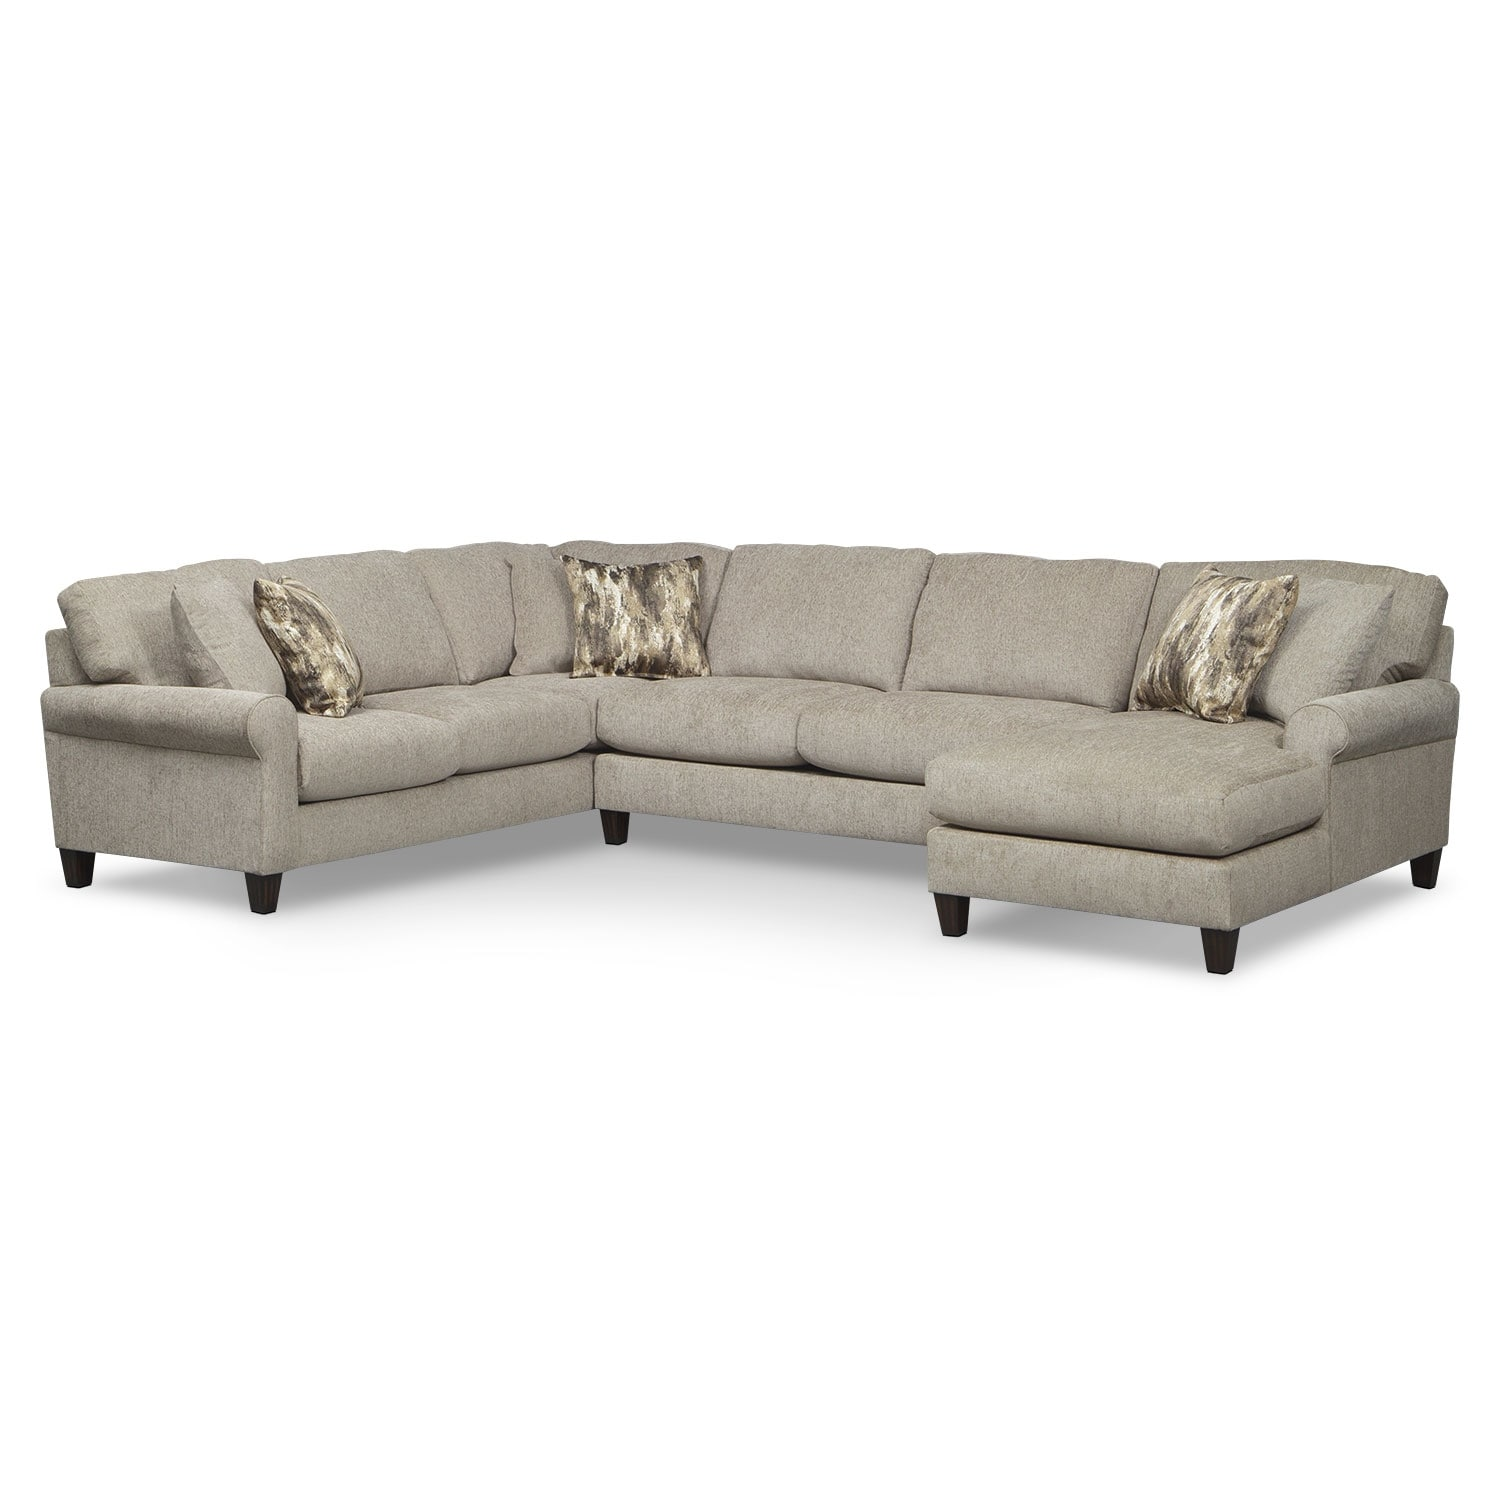 Karma 3-Piece Right-Facing Sectional - Mink